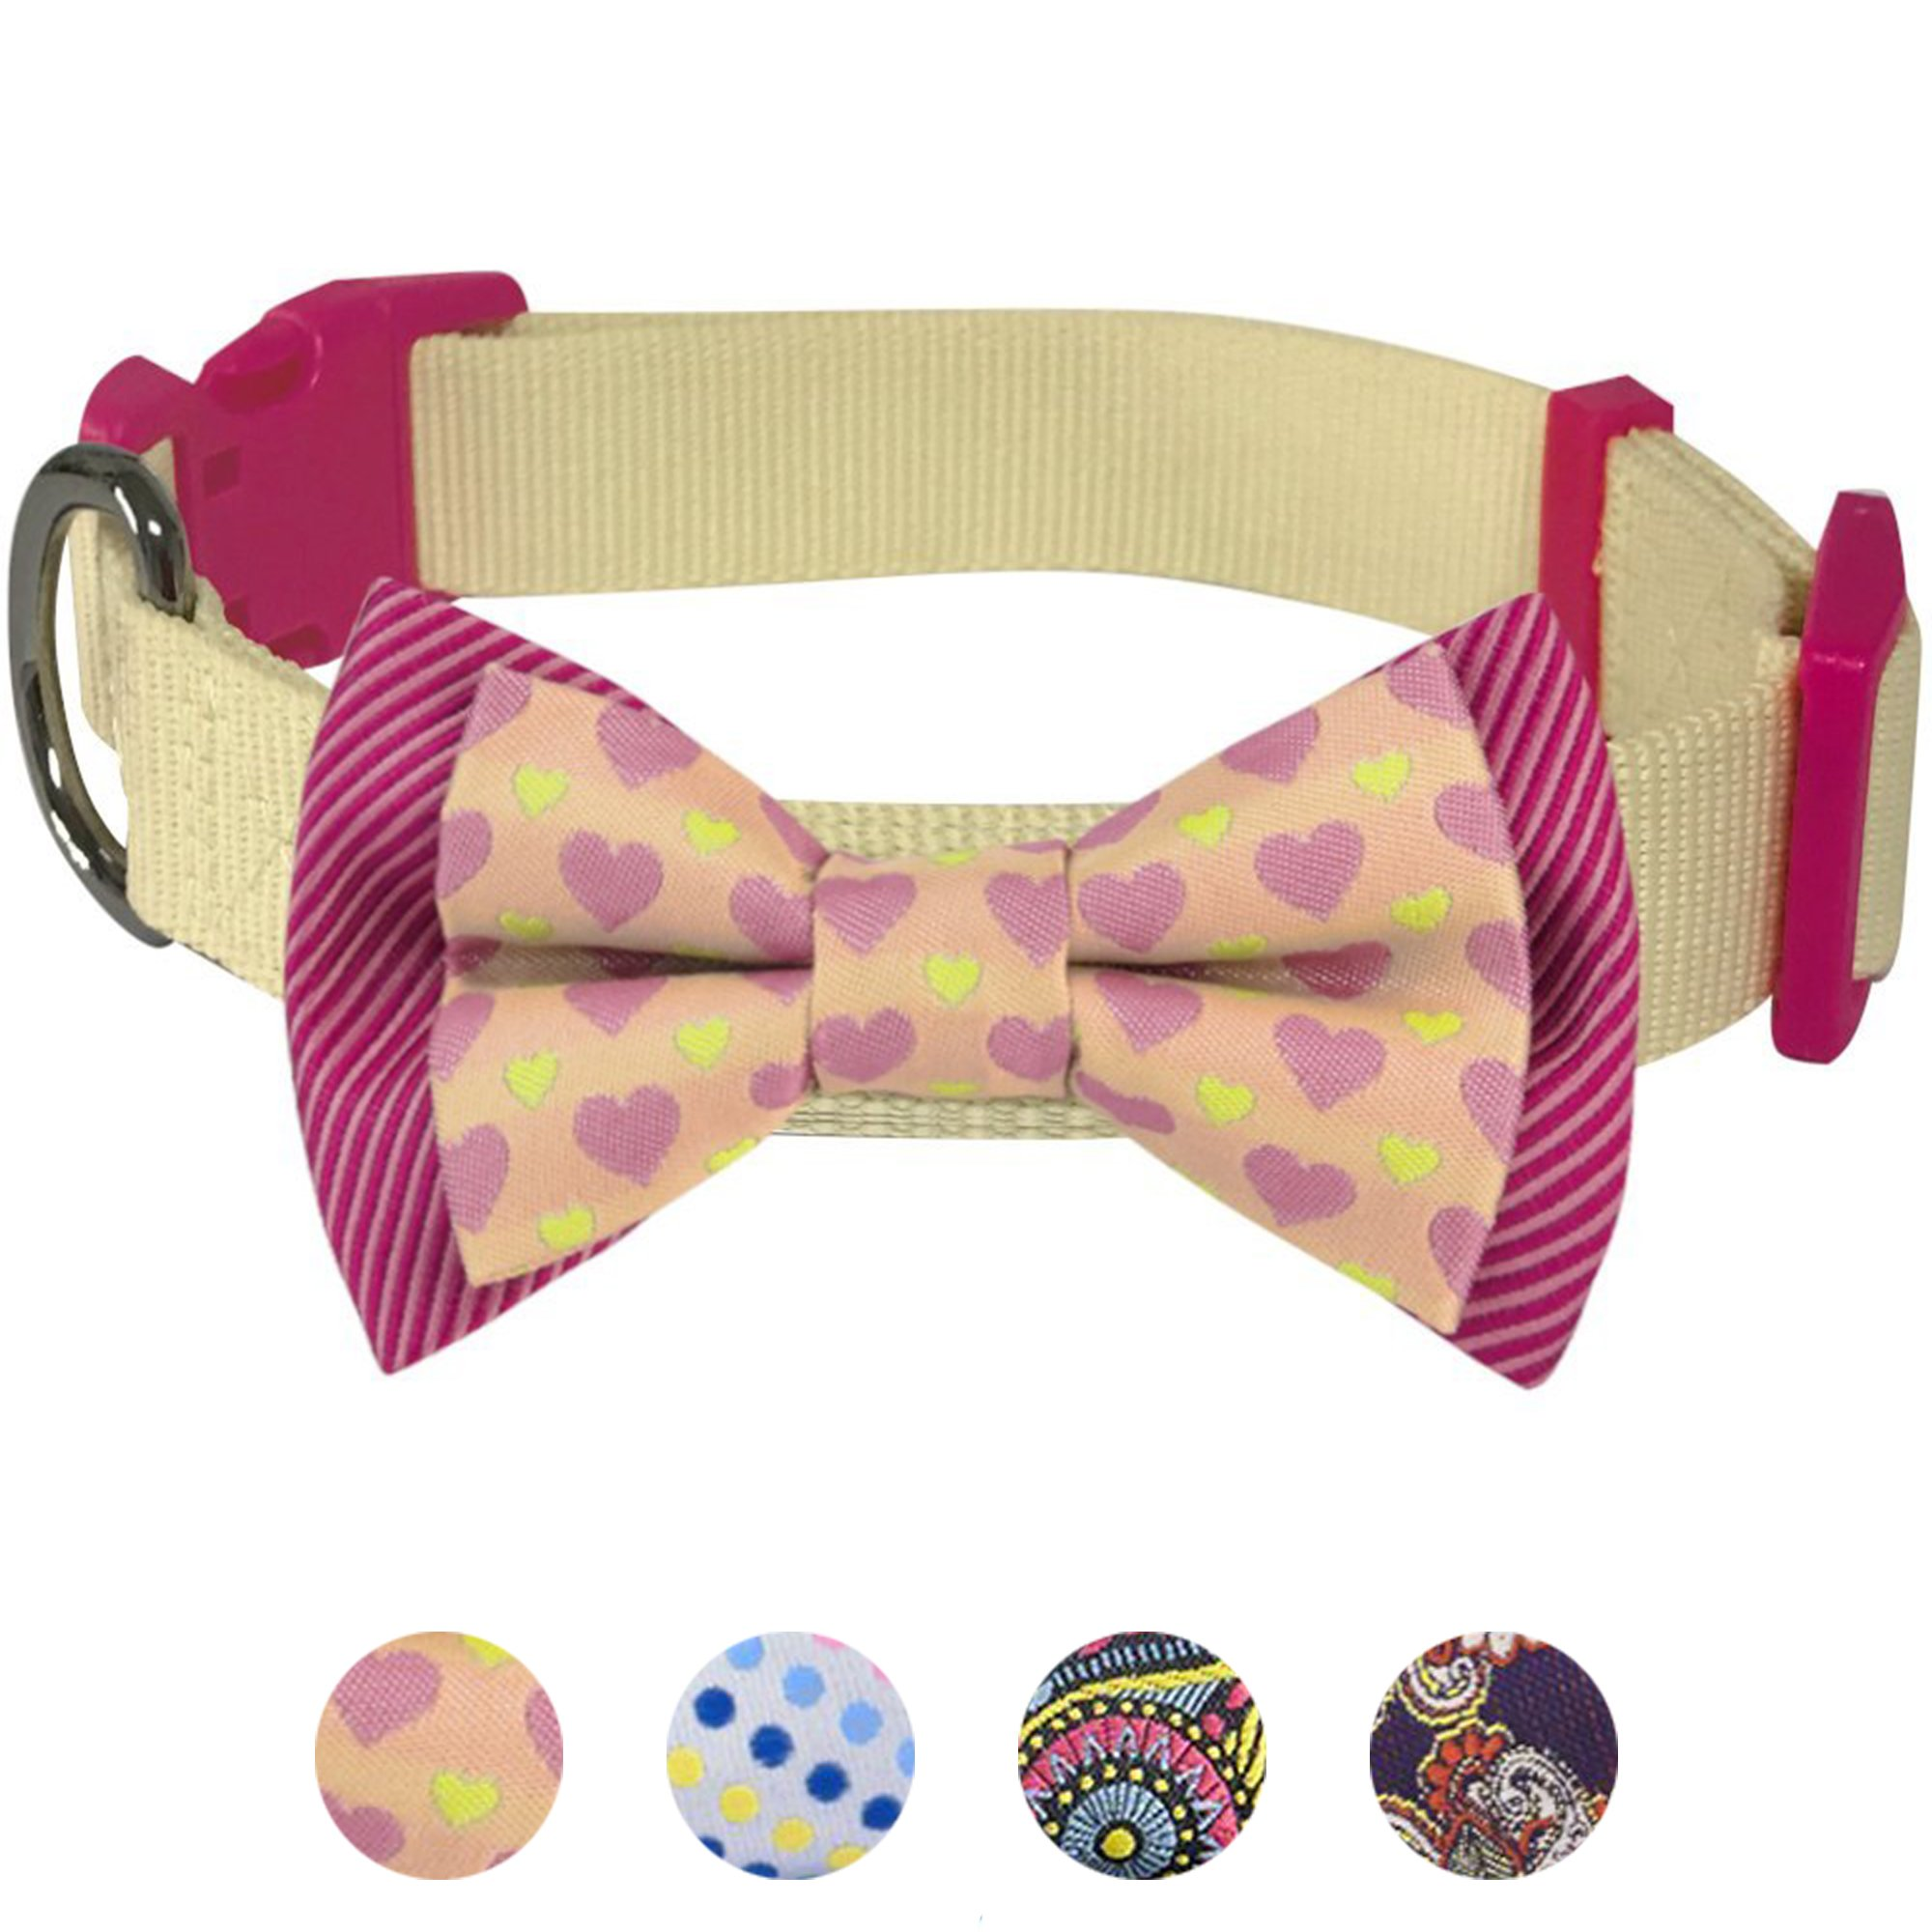 Blueberry Pet 4 Patterns Heart and Stripe Handmade Detachable Bow Tie Dog Collar in Fresh Cream, Small, Neck 12''-16'', Adjustable Collars for Puppies & Small Dogs